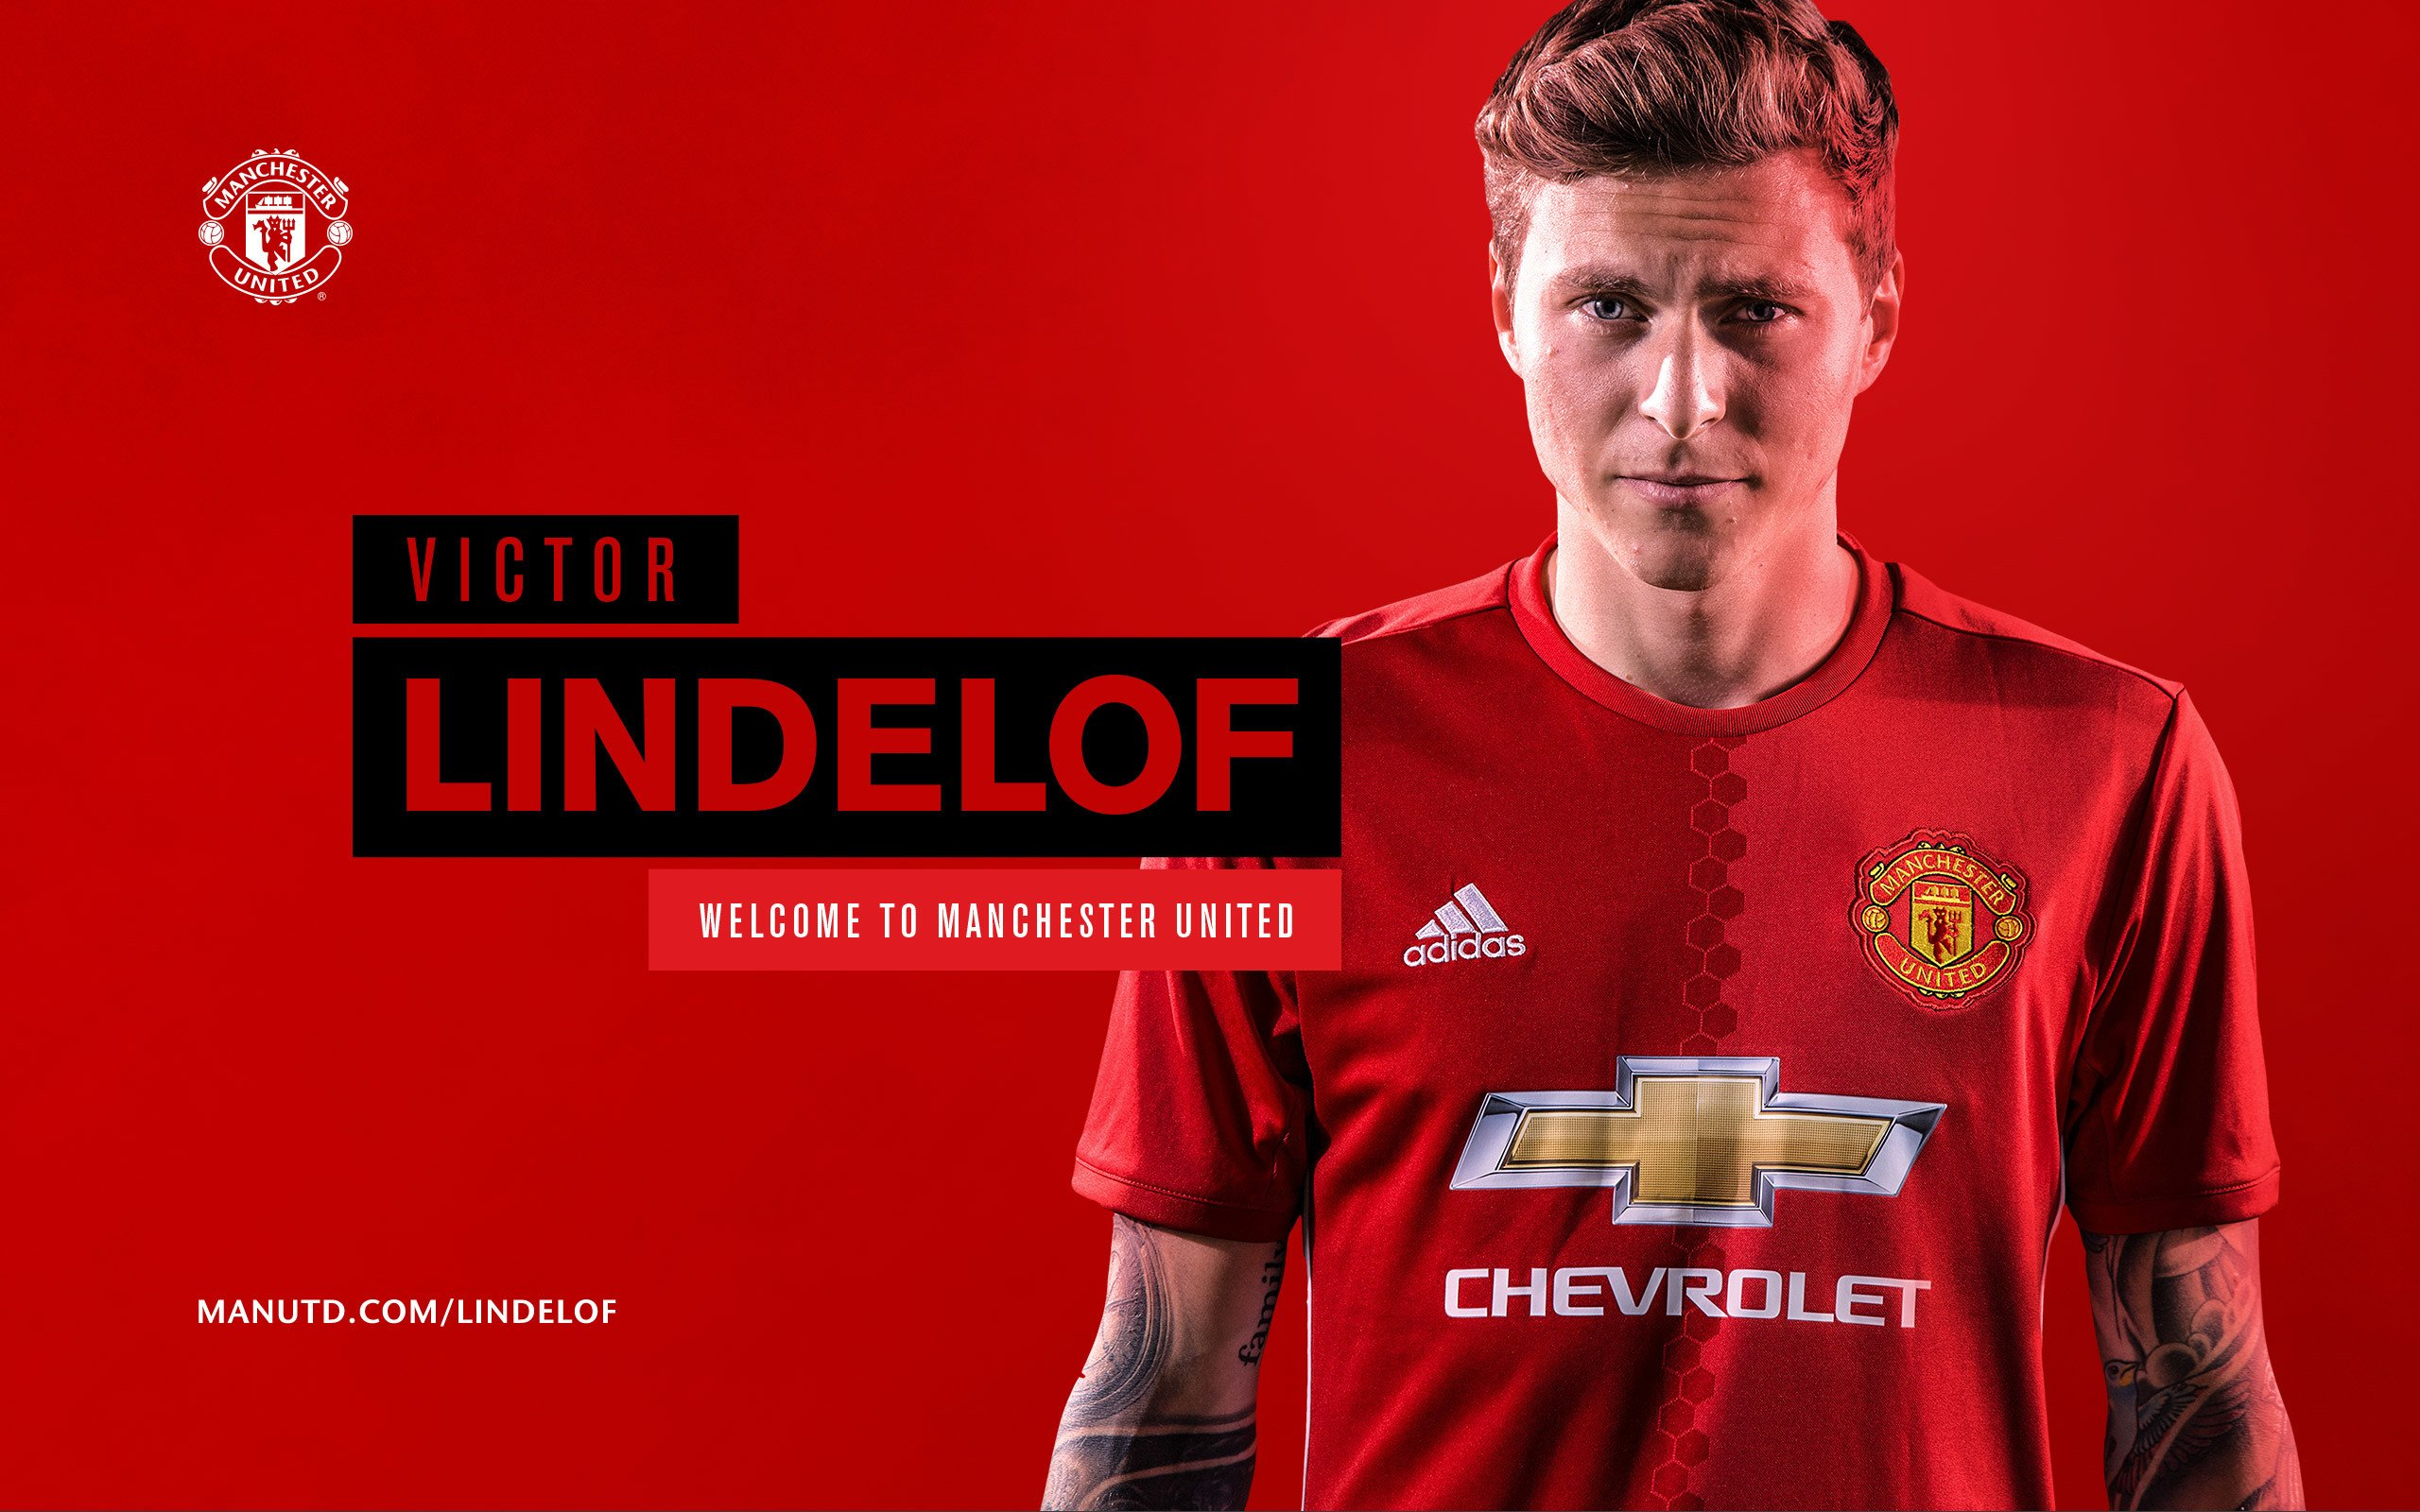 Manchester United HD Wallpaper 2018 73 images 2560x1600